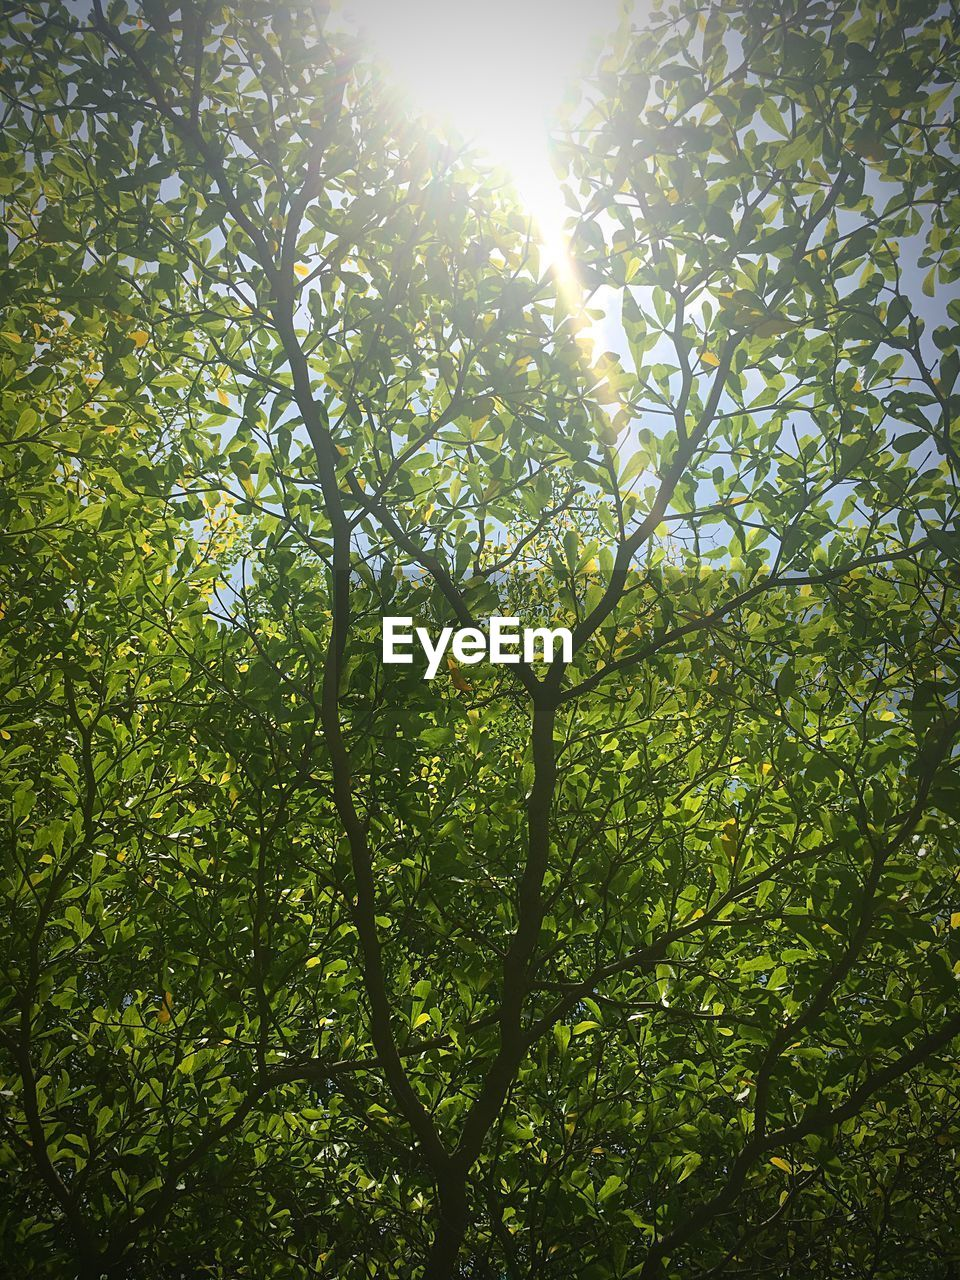 sunlight, sunbeam, lens flare, sun, tree, green color, growth, nature, low angle view, outdoors, day, no people, branch, leaf, beauty in nature, forest, sky, freshness